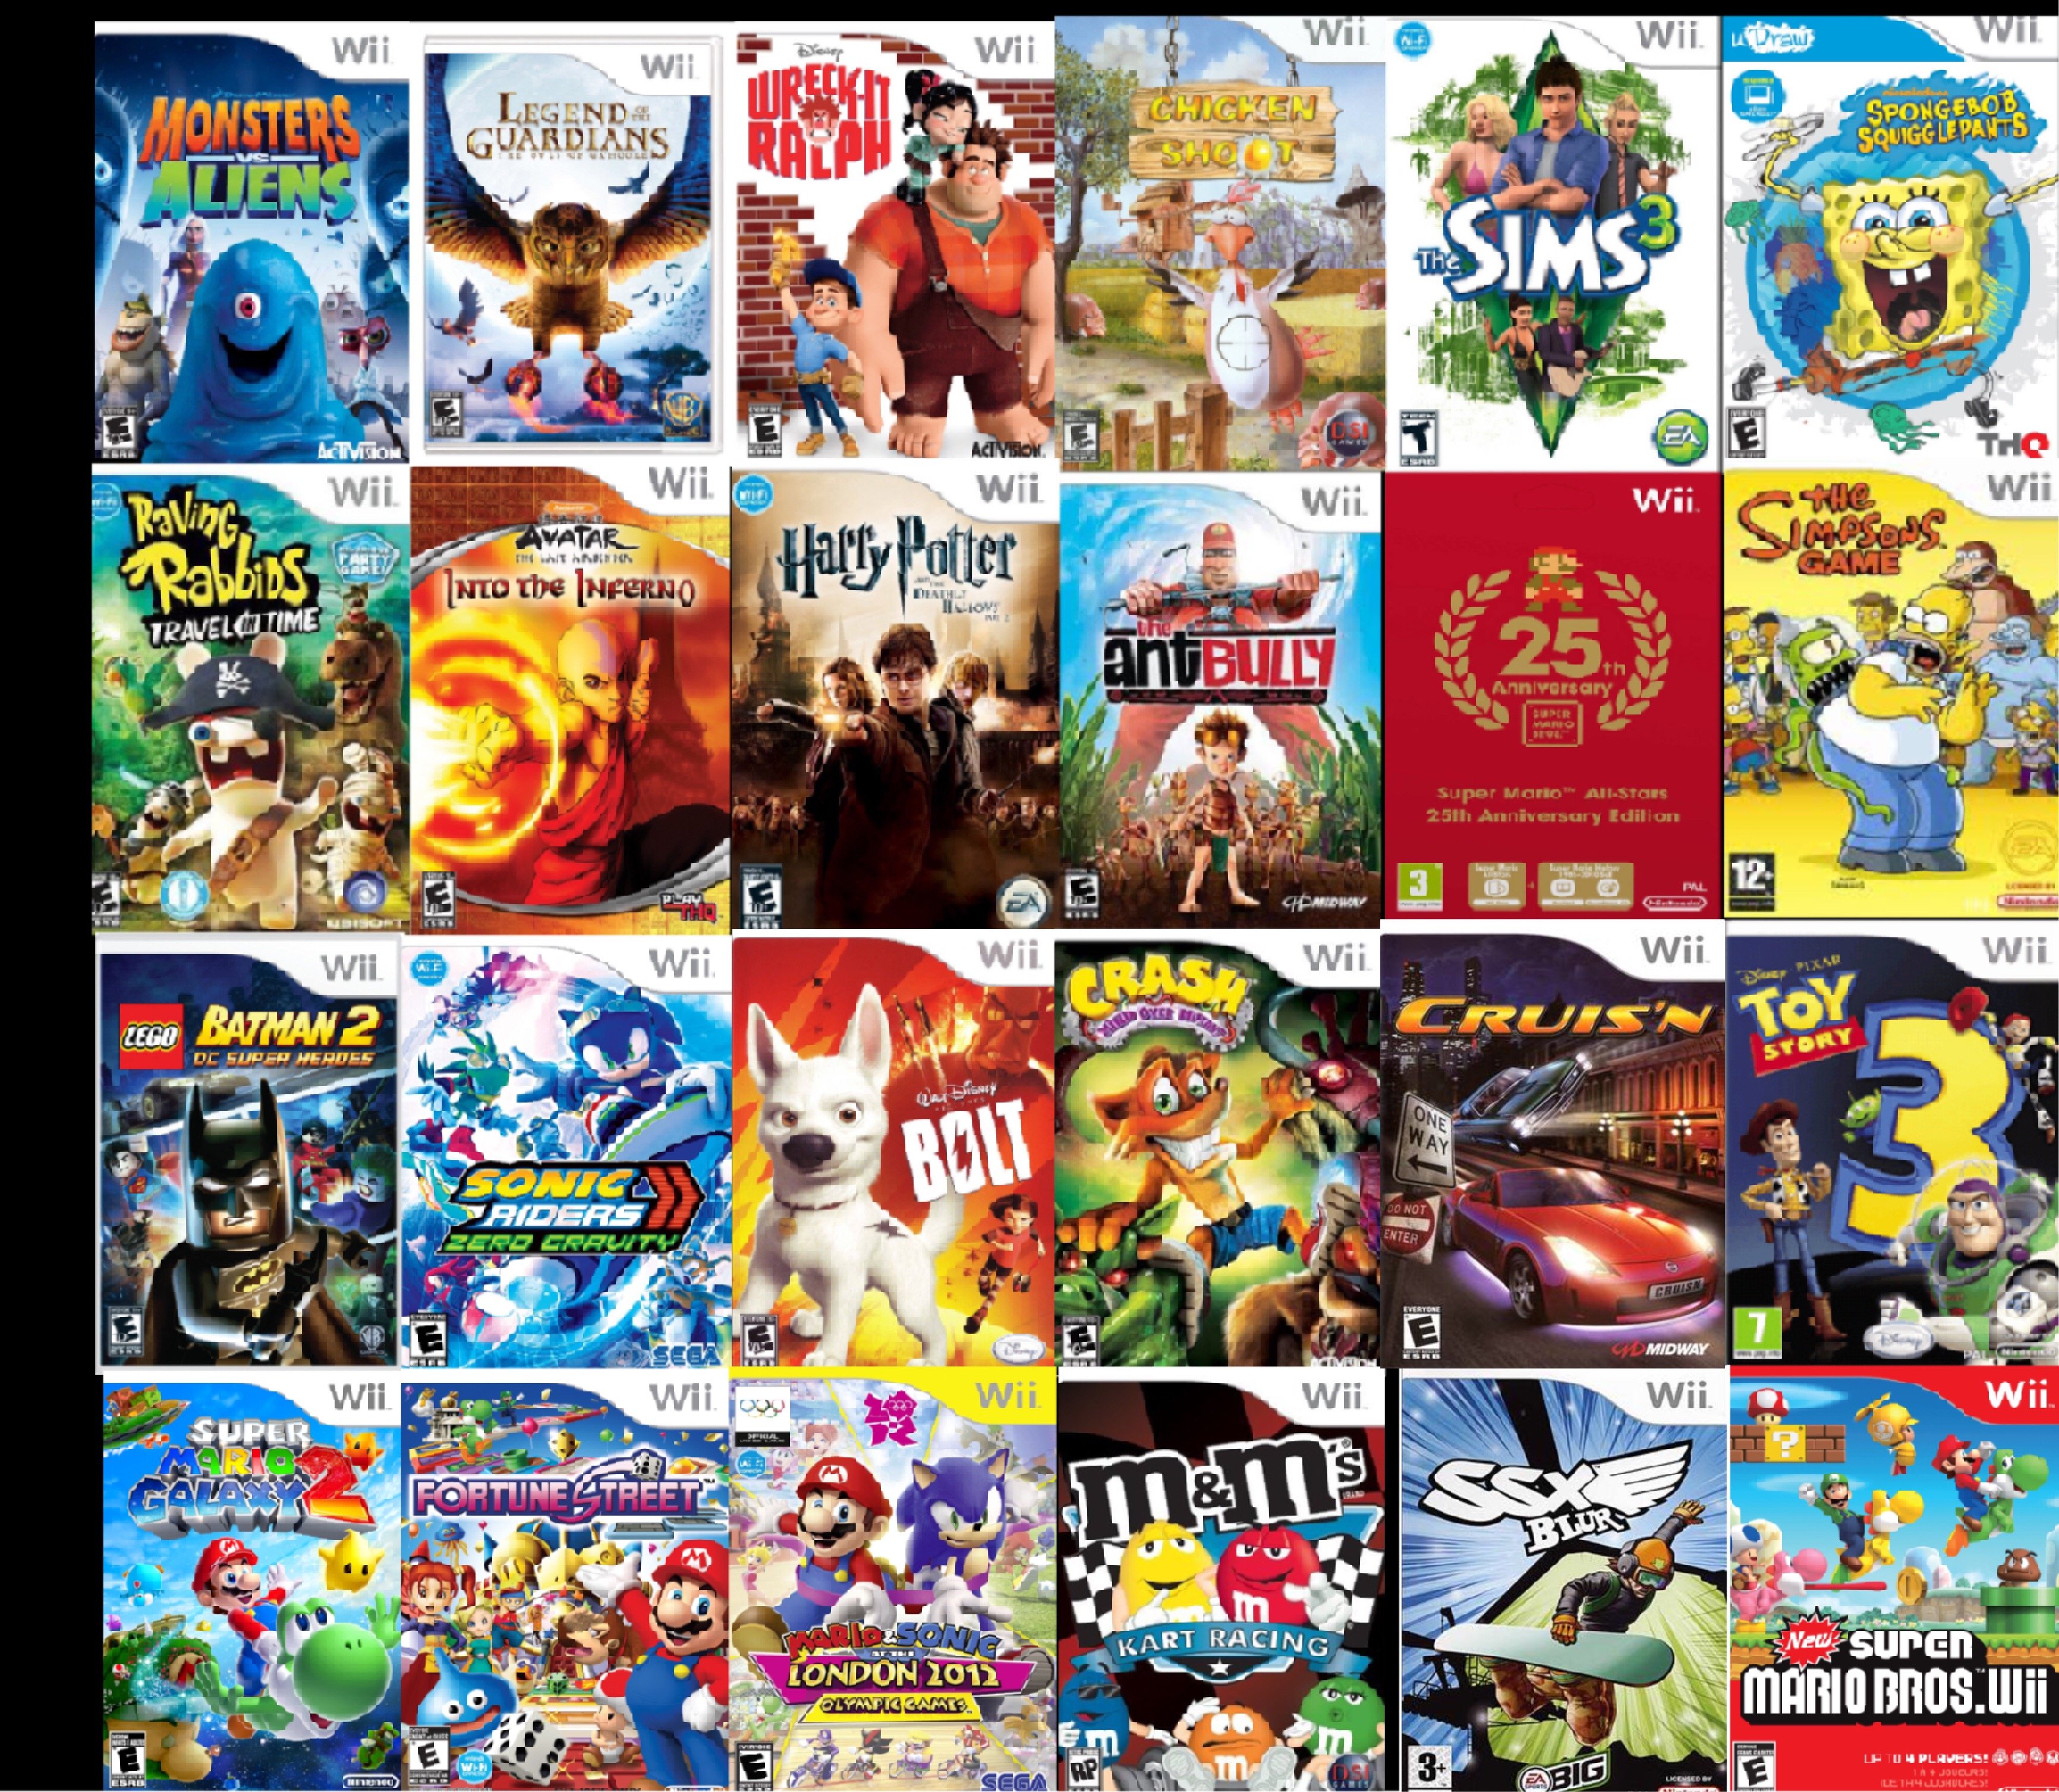 Why Wii Games